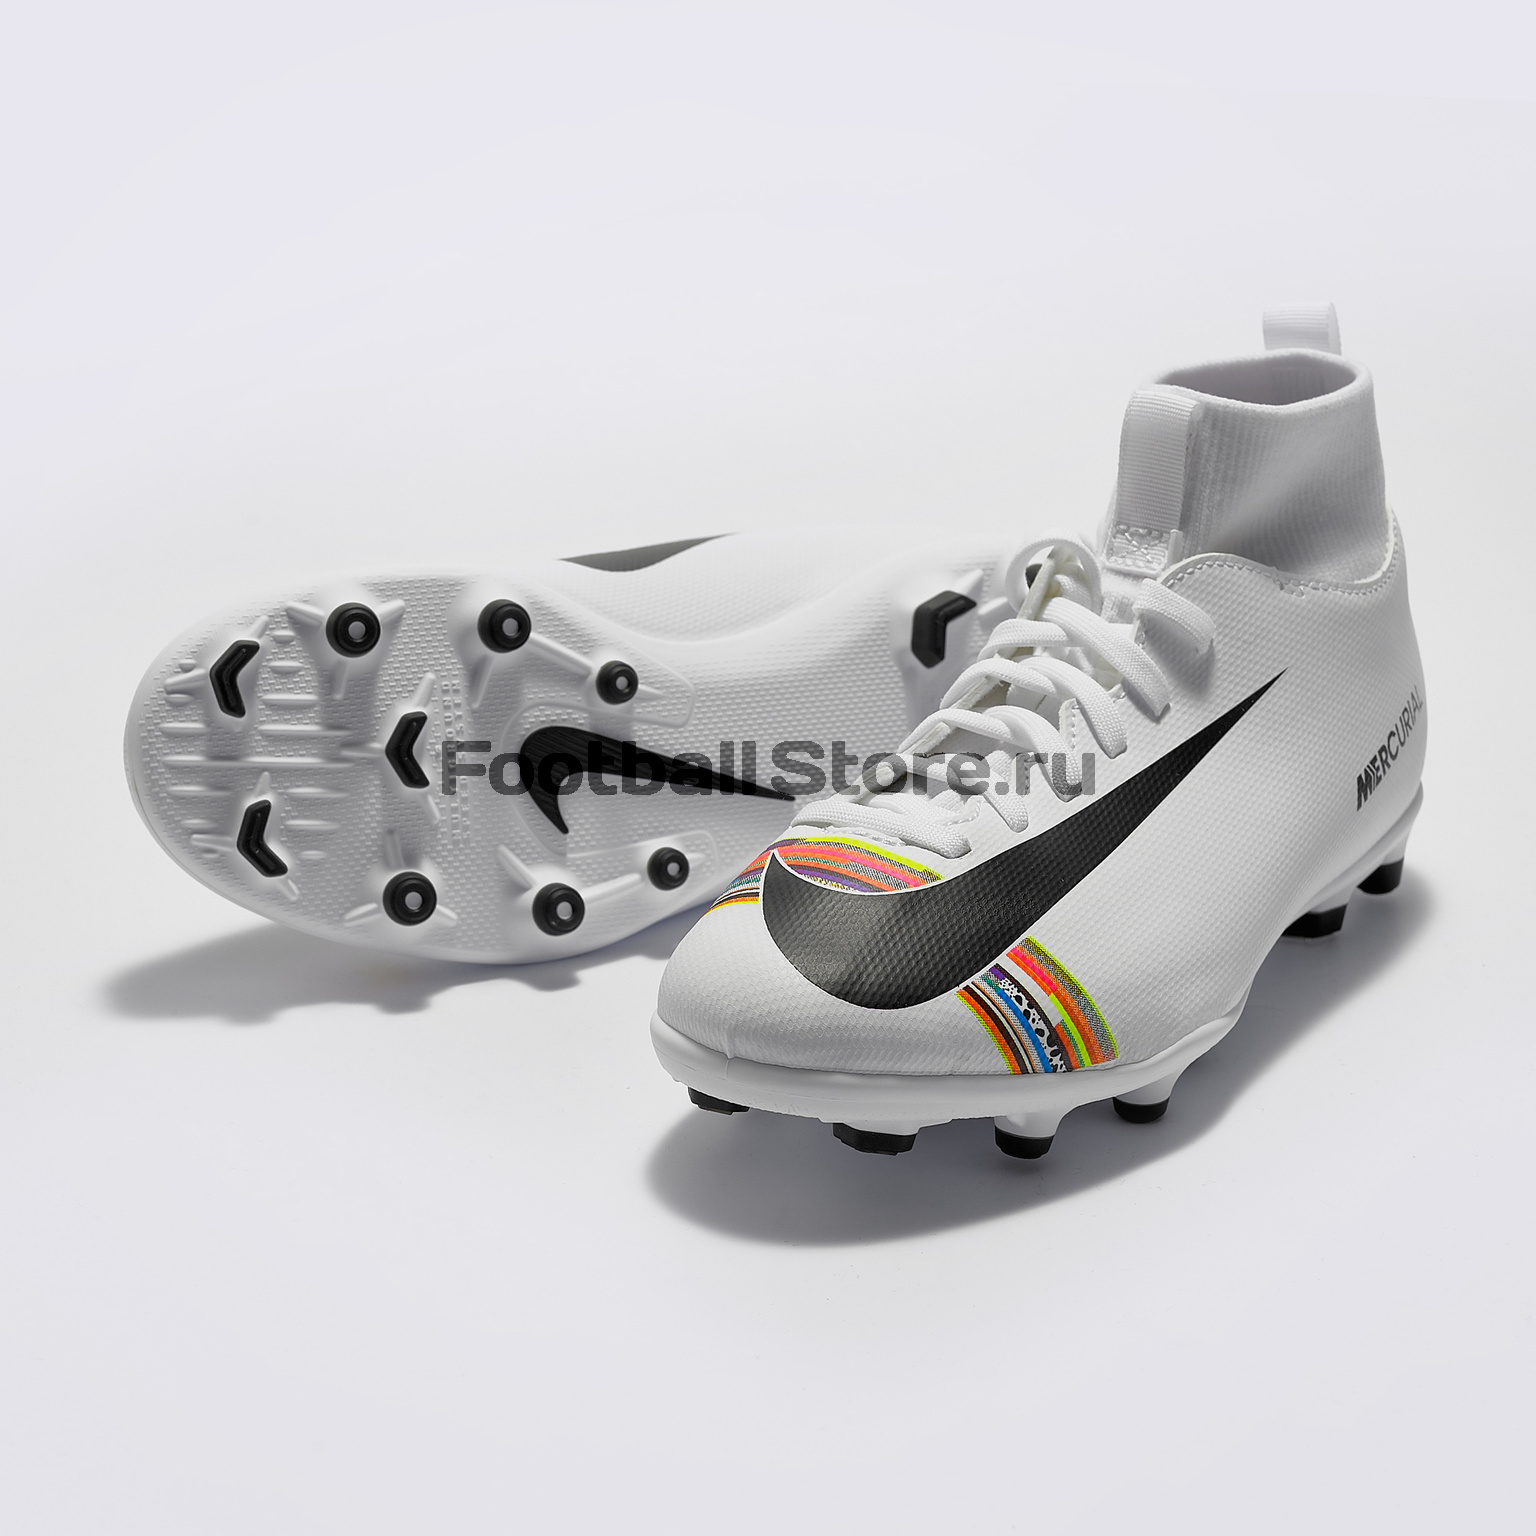 Бутсы детские Nike Superfly 6 Club CR7 FG/MG AJ3115-109 бутсы nike mercurial vapor cr7 fg 684860 014